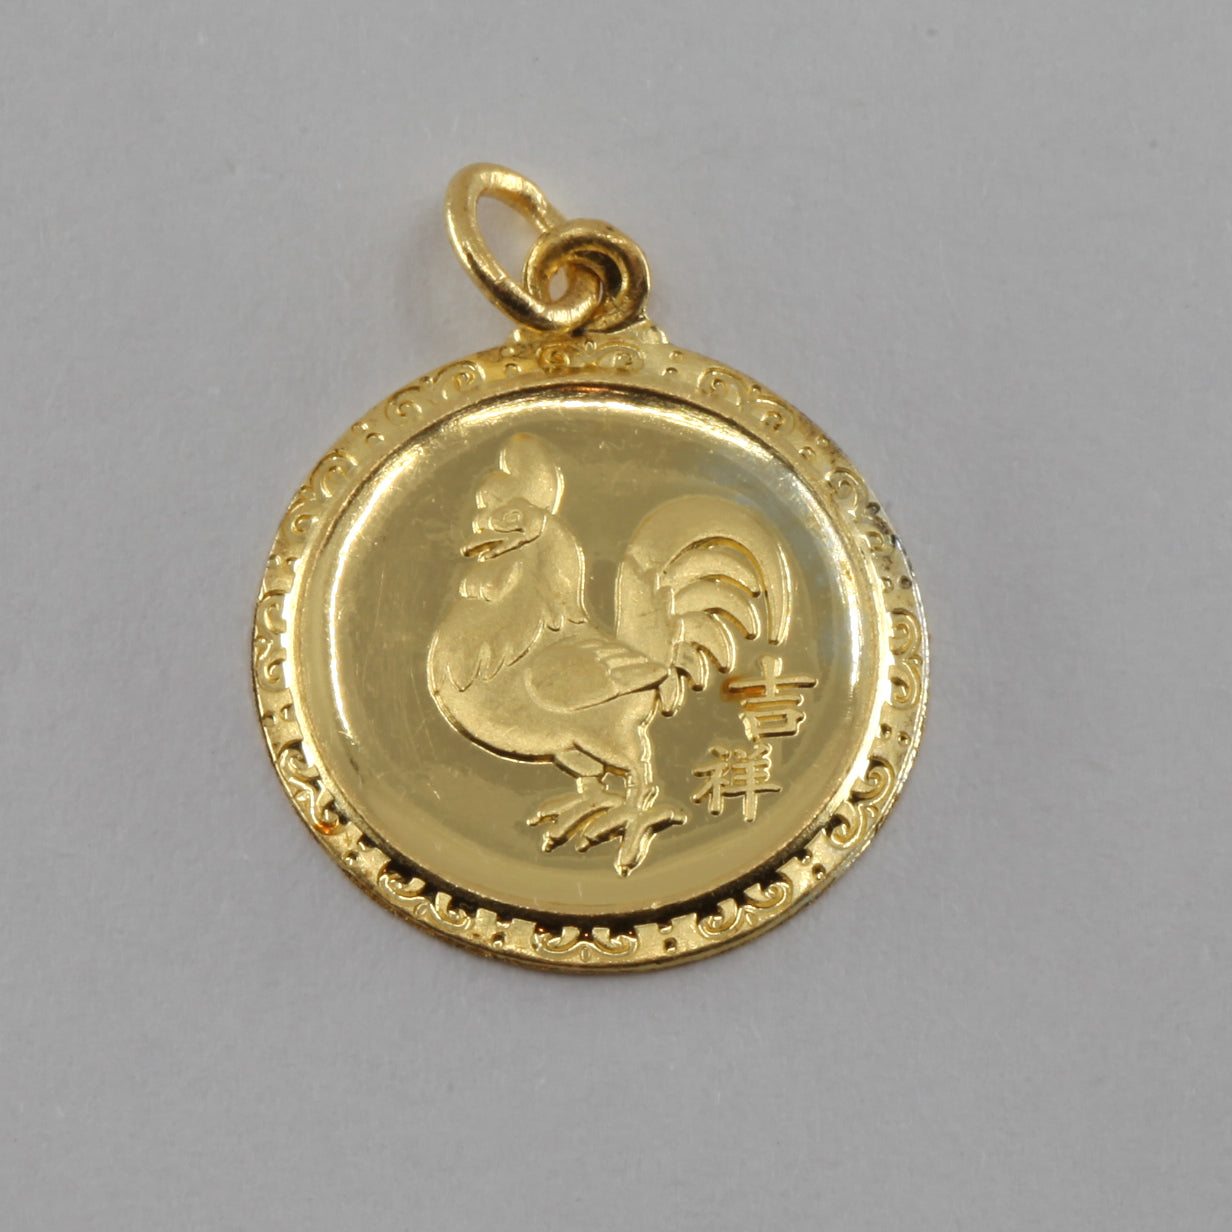 24K Solid Yellow Gold Round Zodiac Rooster Chicken Pendant 3.6 Grams